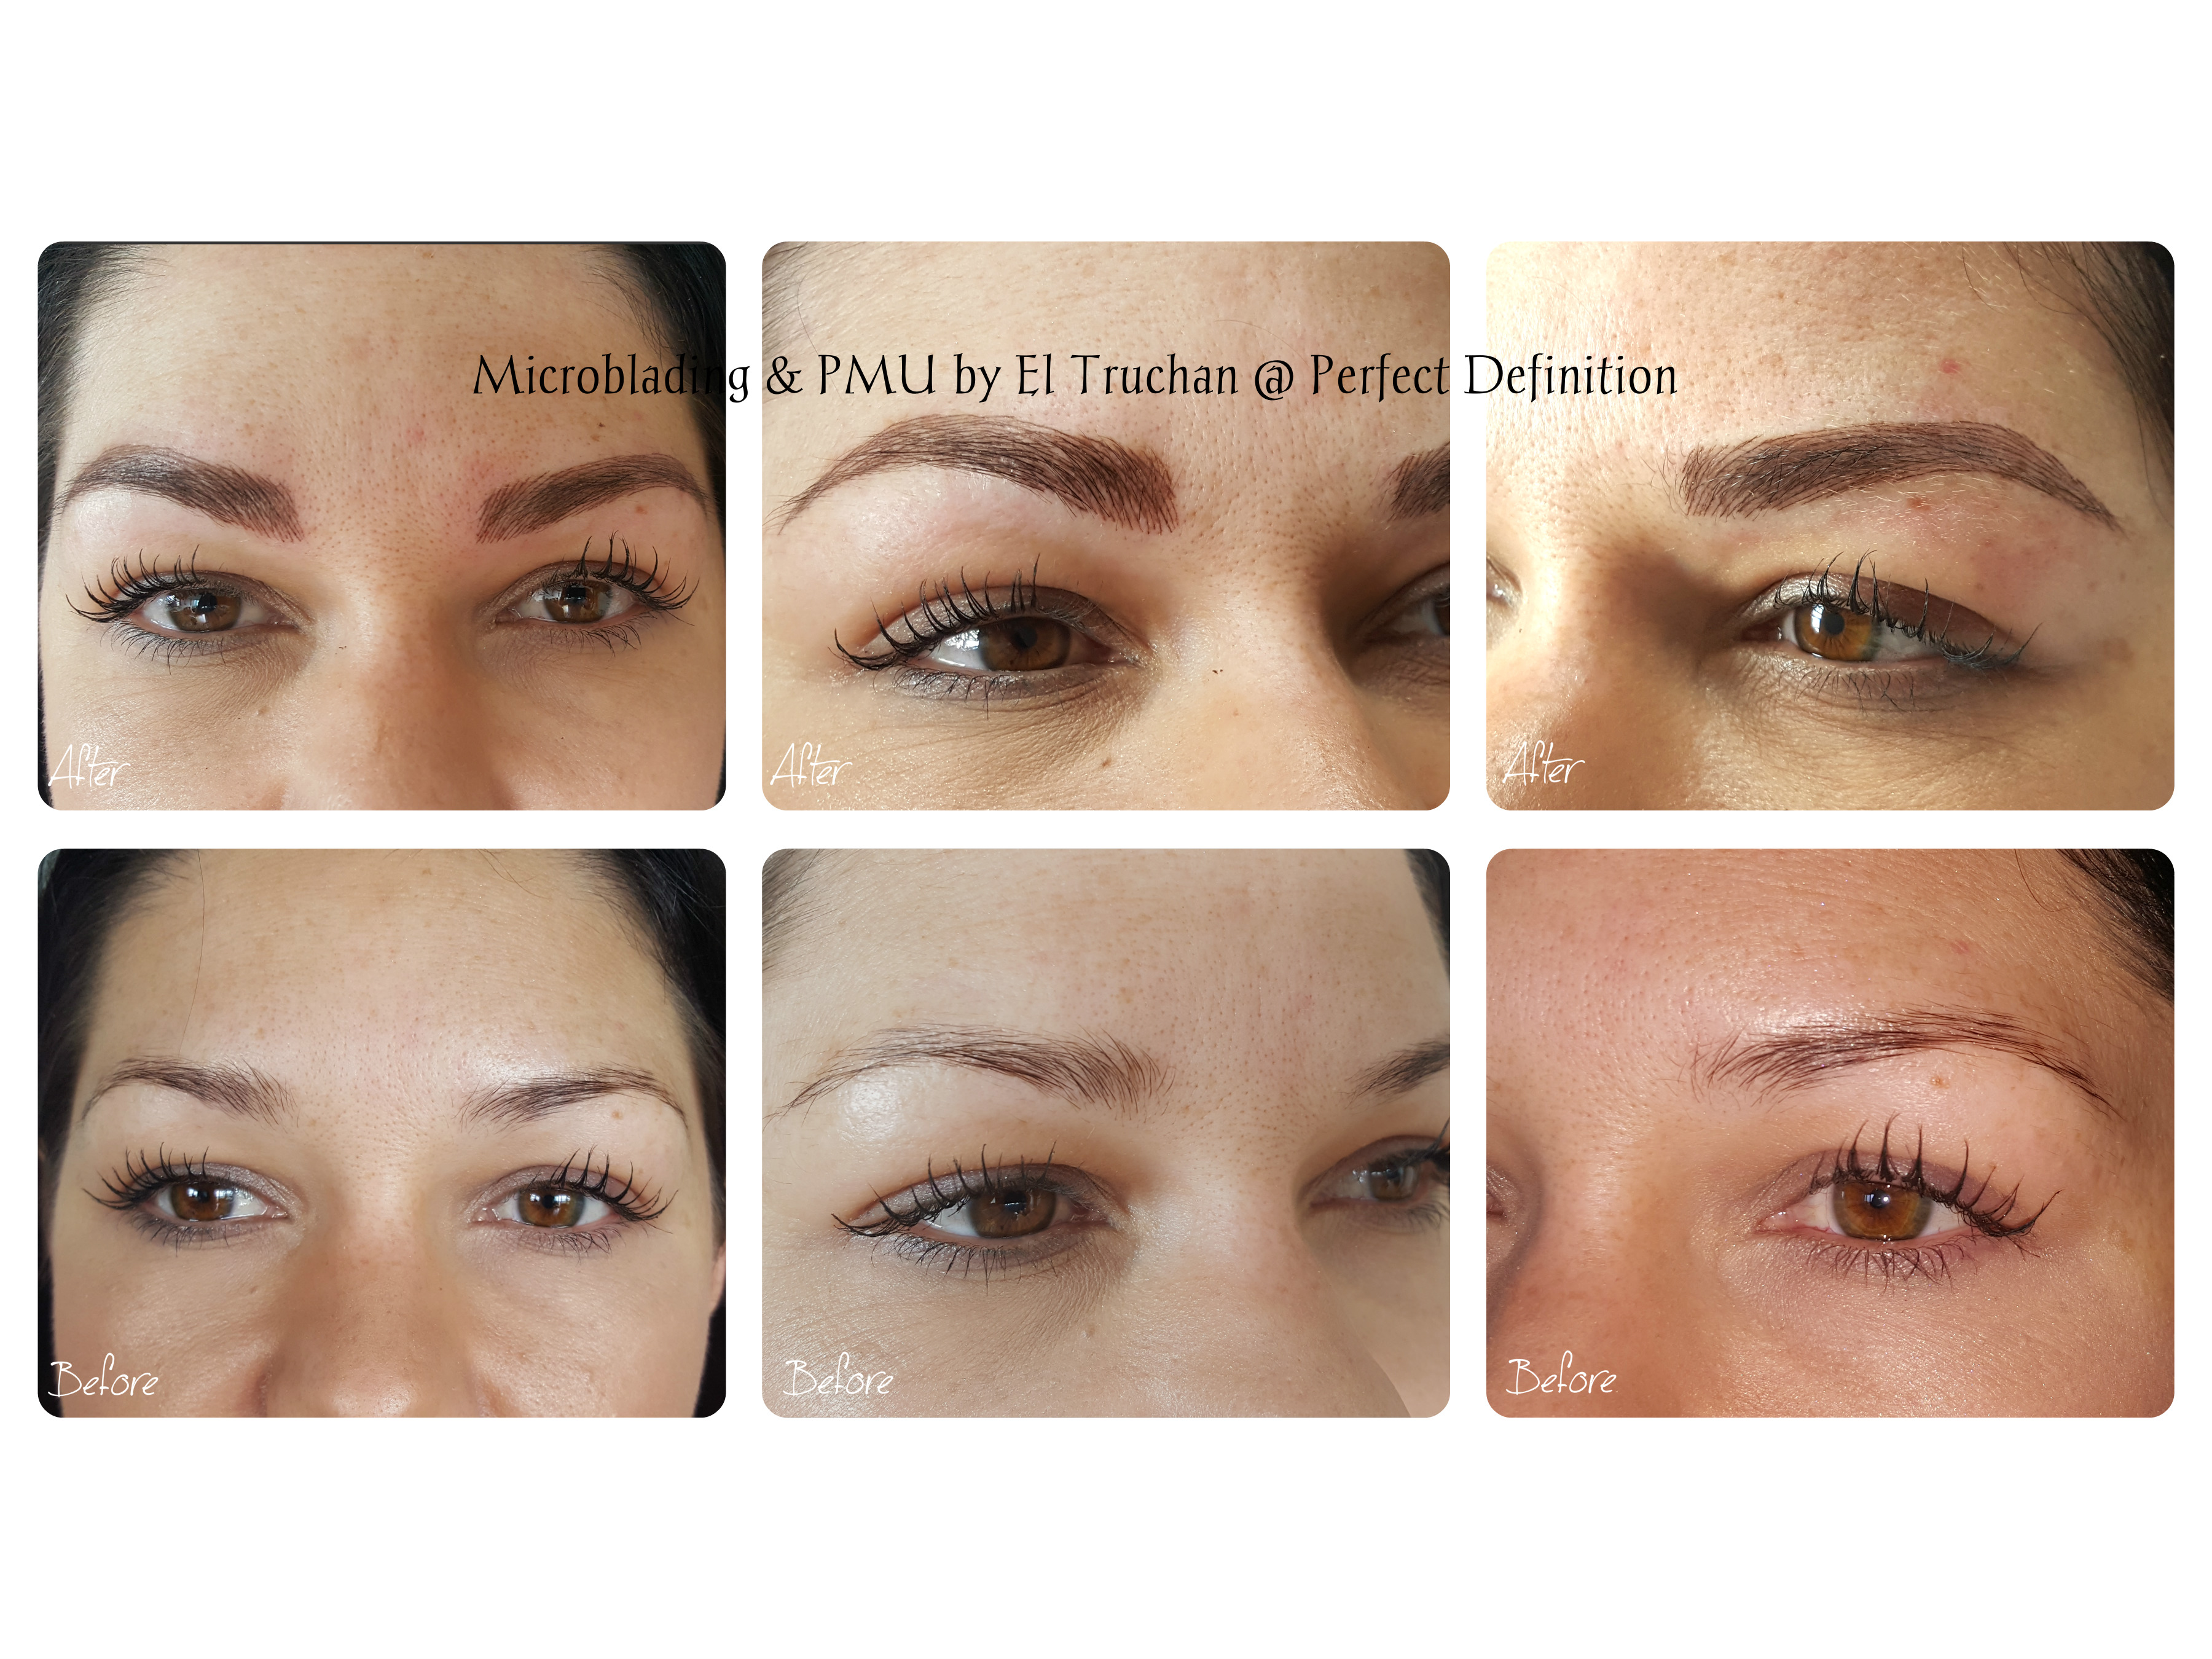 Microblading & PMU by El Truchan _ Perfect Definition in London